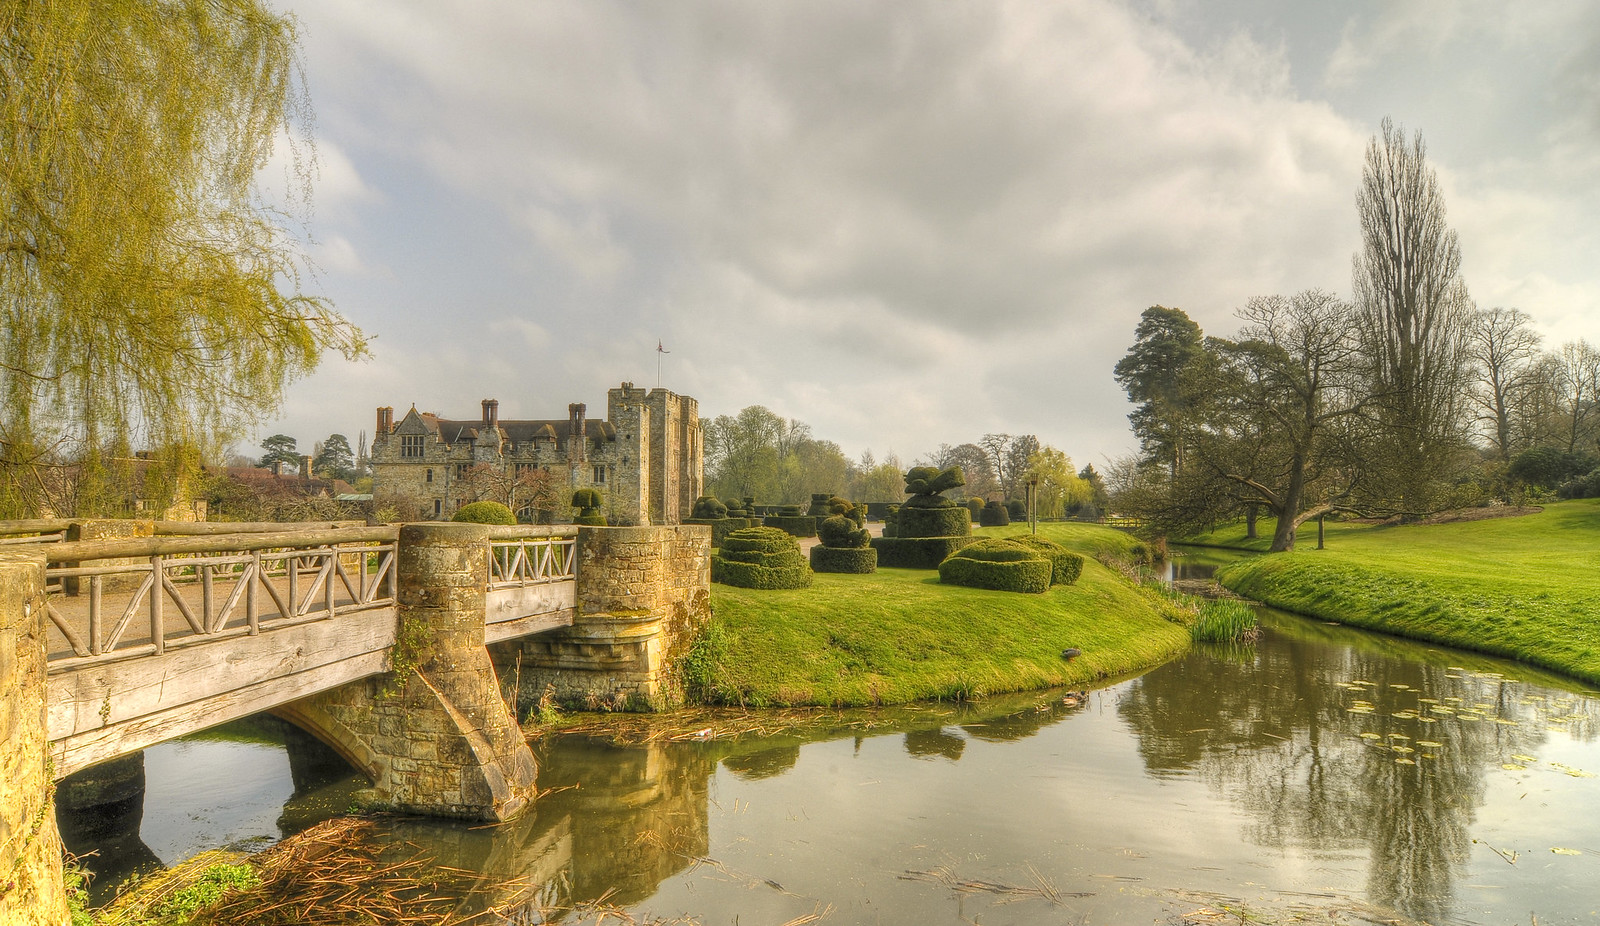 Hever Castle across lake v2 See v1 for comparison. This is my second shot of Hever Castle from across the 'lake' at the front. It has a better angle on the bridge and I like the way the lake takes up more of the foreground, but it is less panoramic. I think I prefer this one, but I'm not sure!